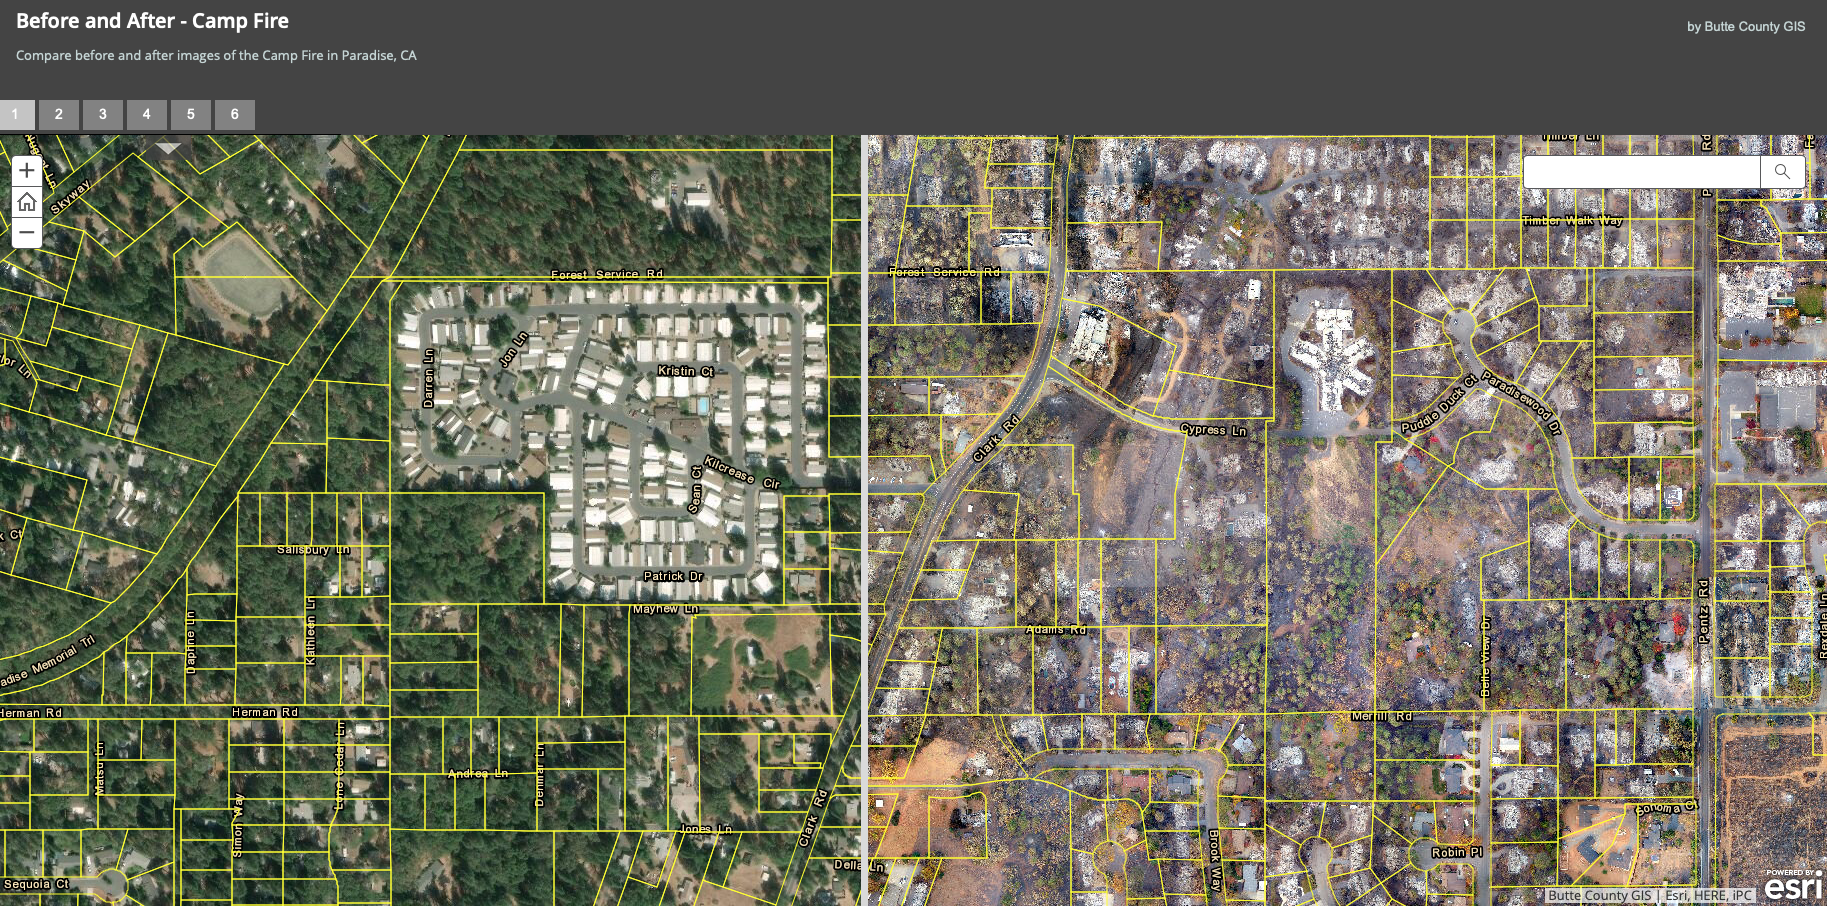 DJI drone photos show before and after scenes of the Camp Fire